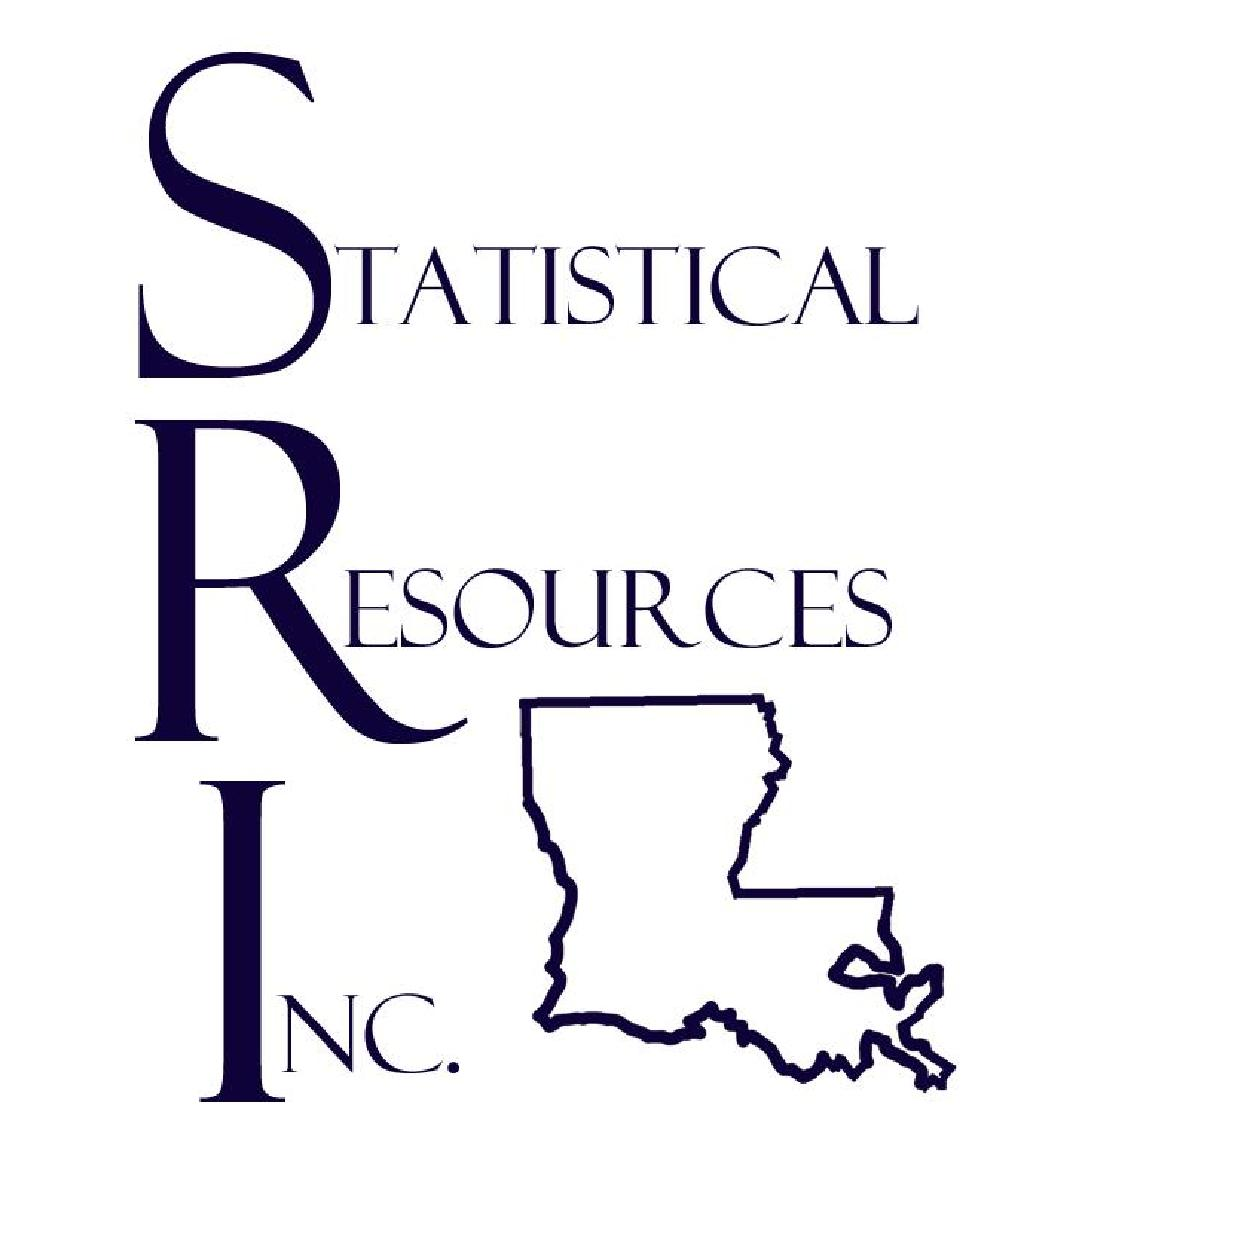 Statistical Resources Inc.